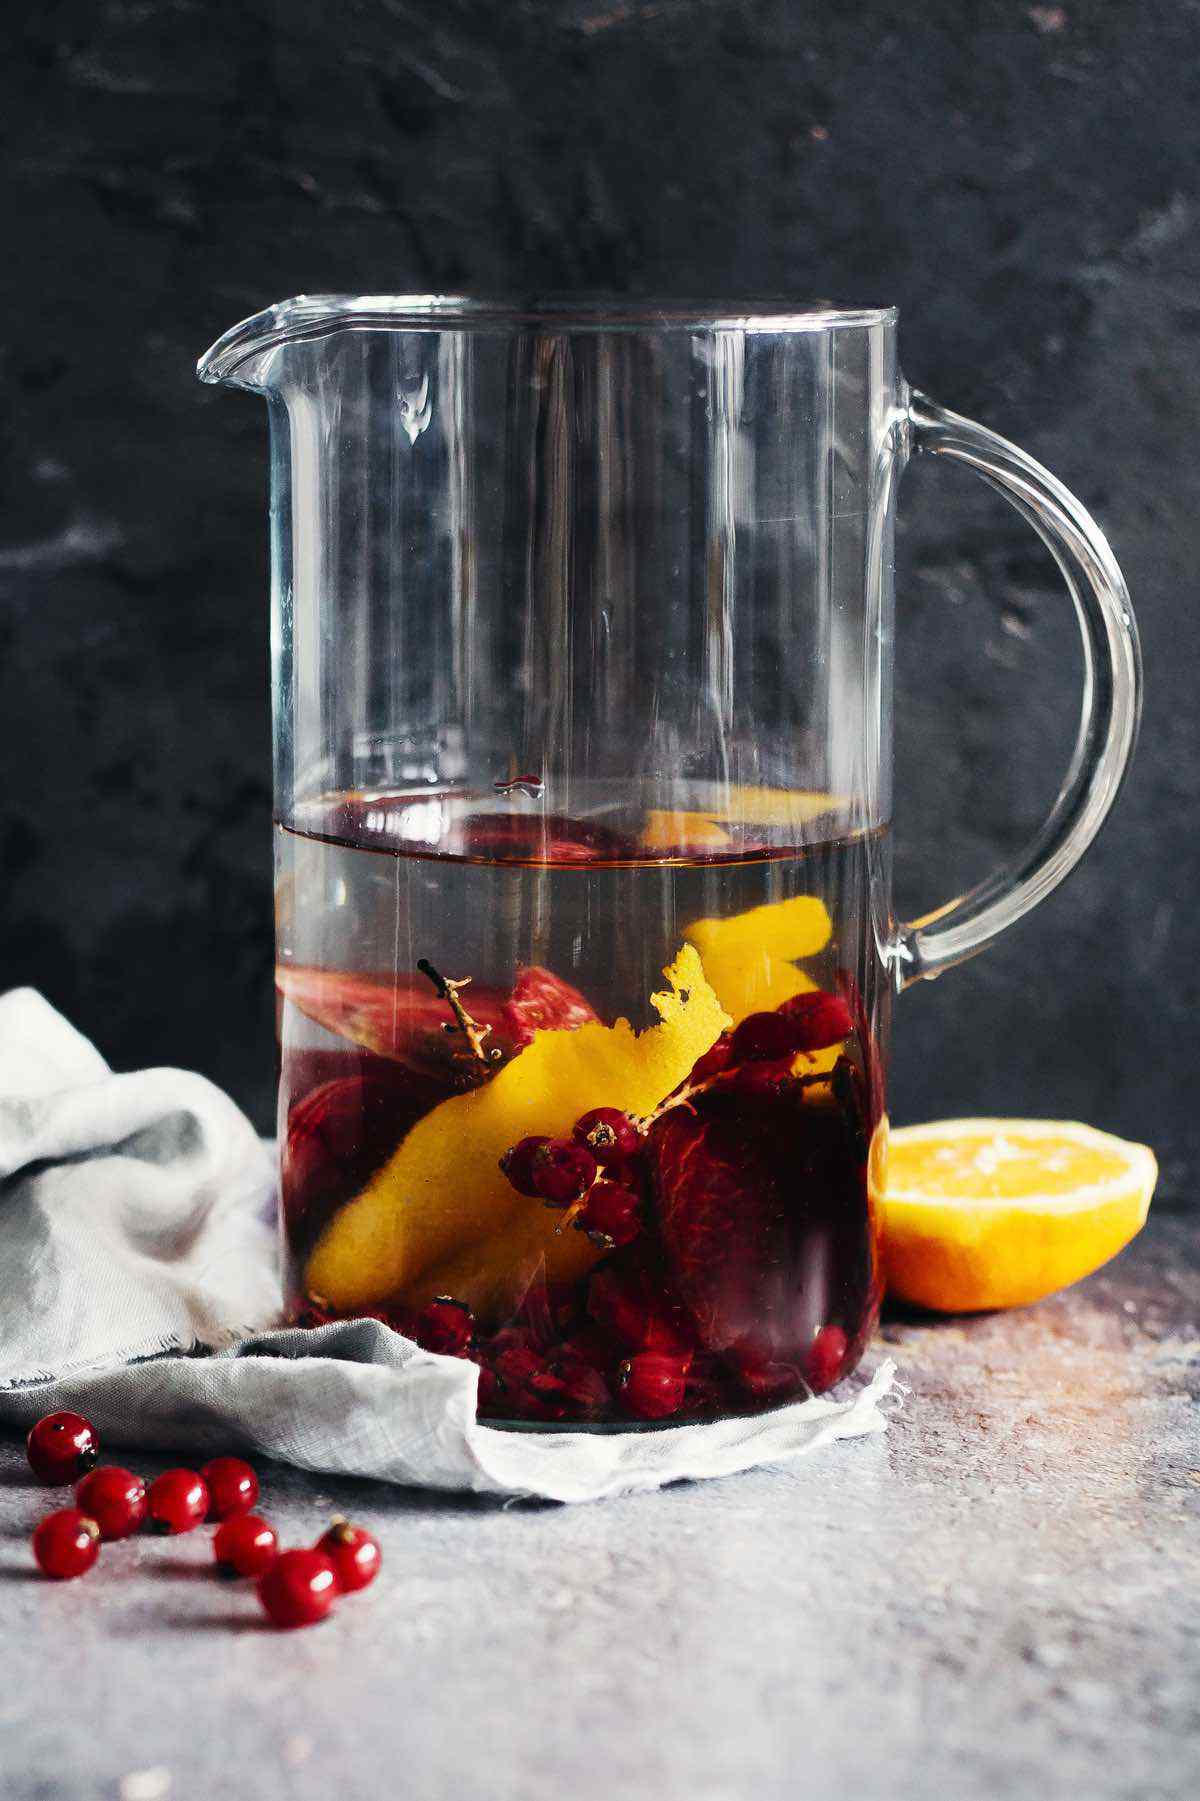 Cranberry Orange Zest Beet Detox Water